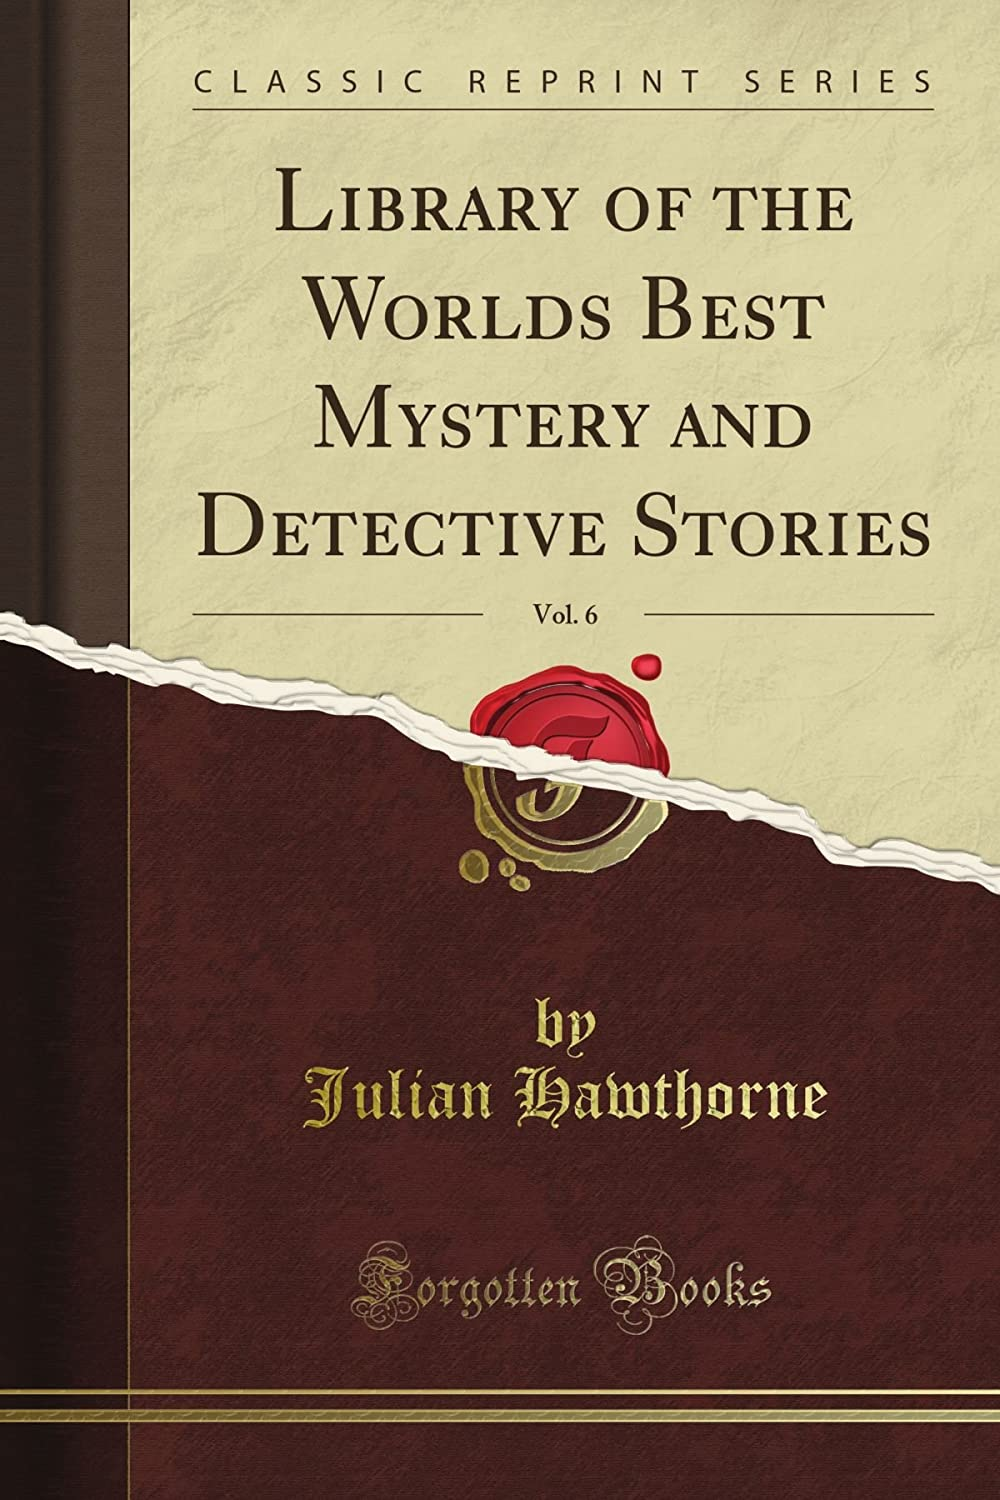 Library of the World's Best Mystery and Detective Stories, Vol. 6 (Classic Reprint)